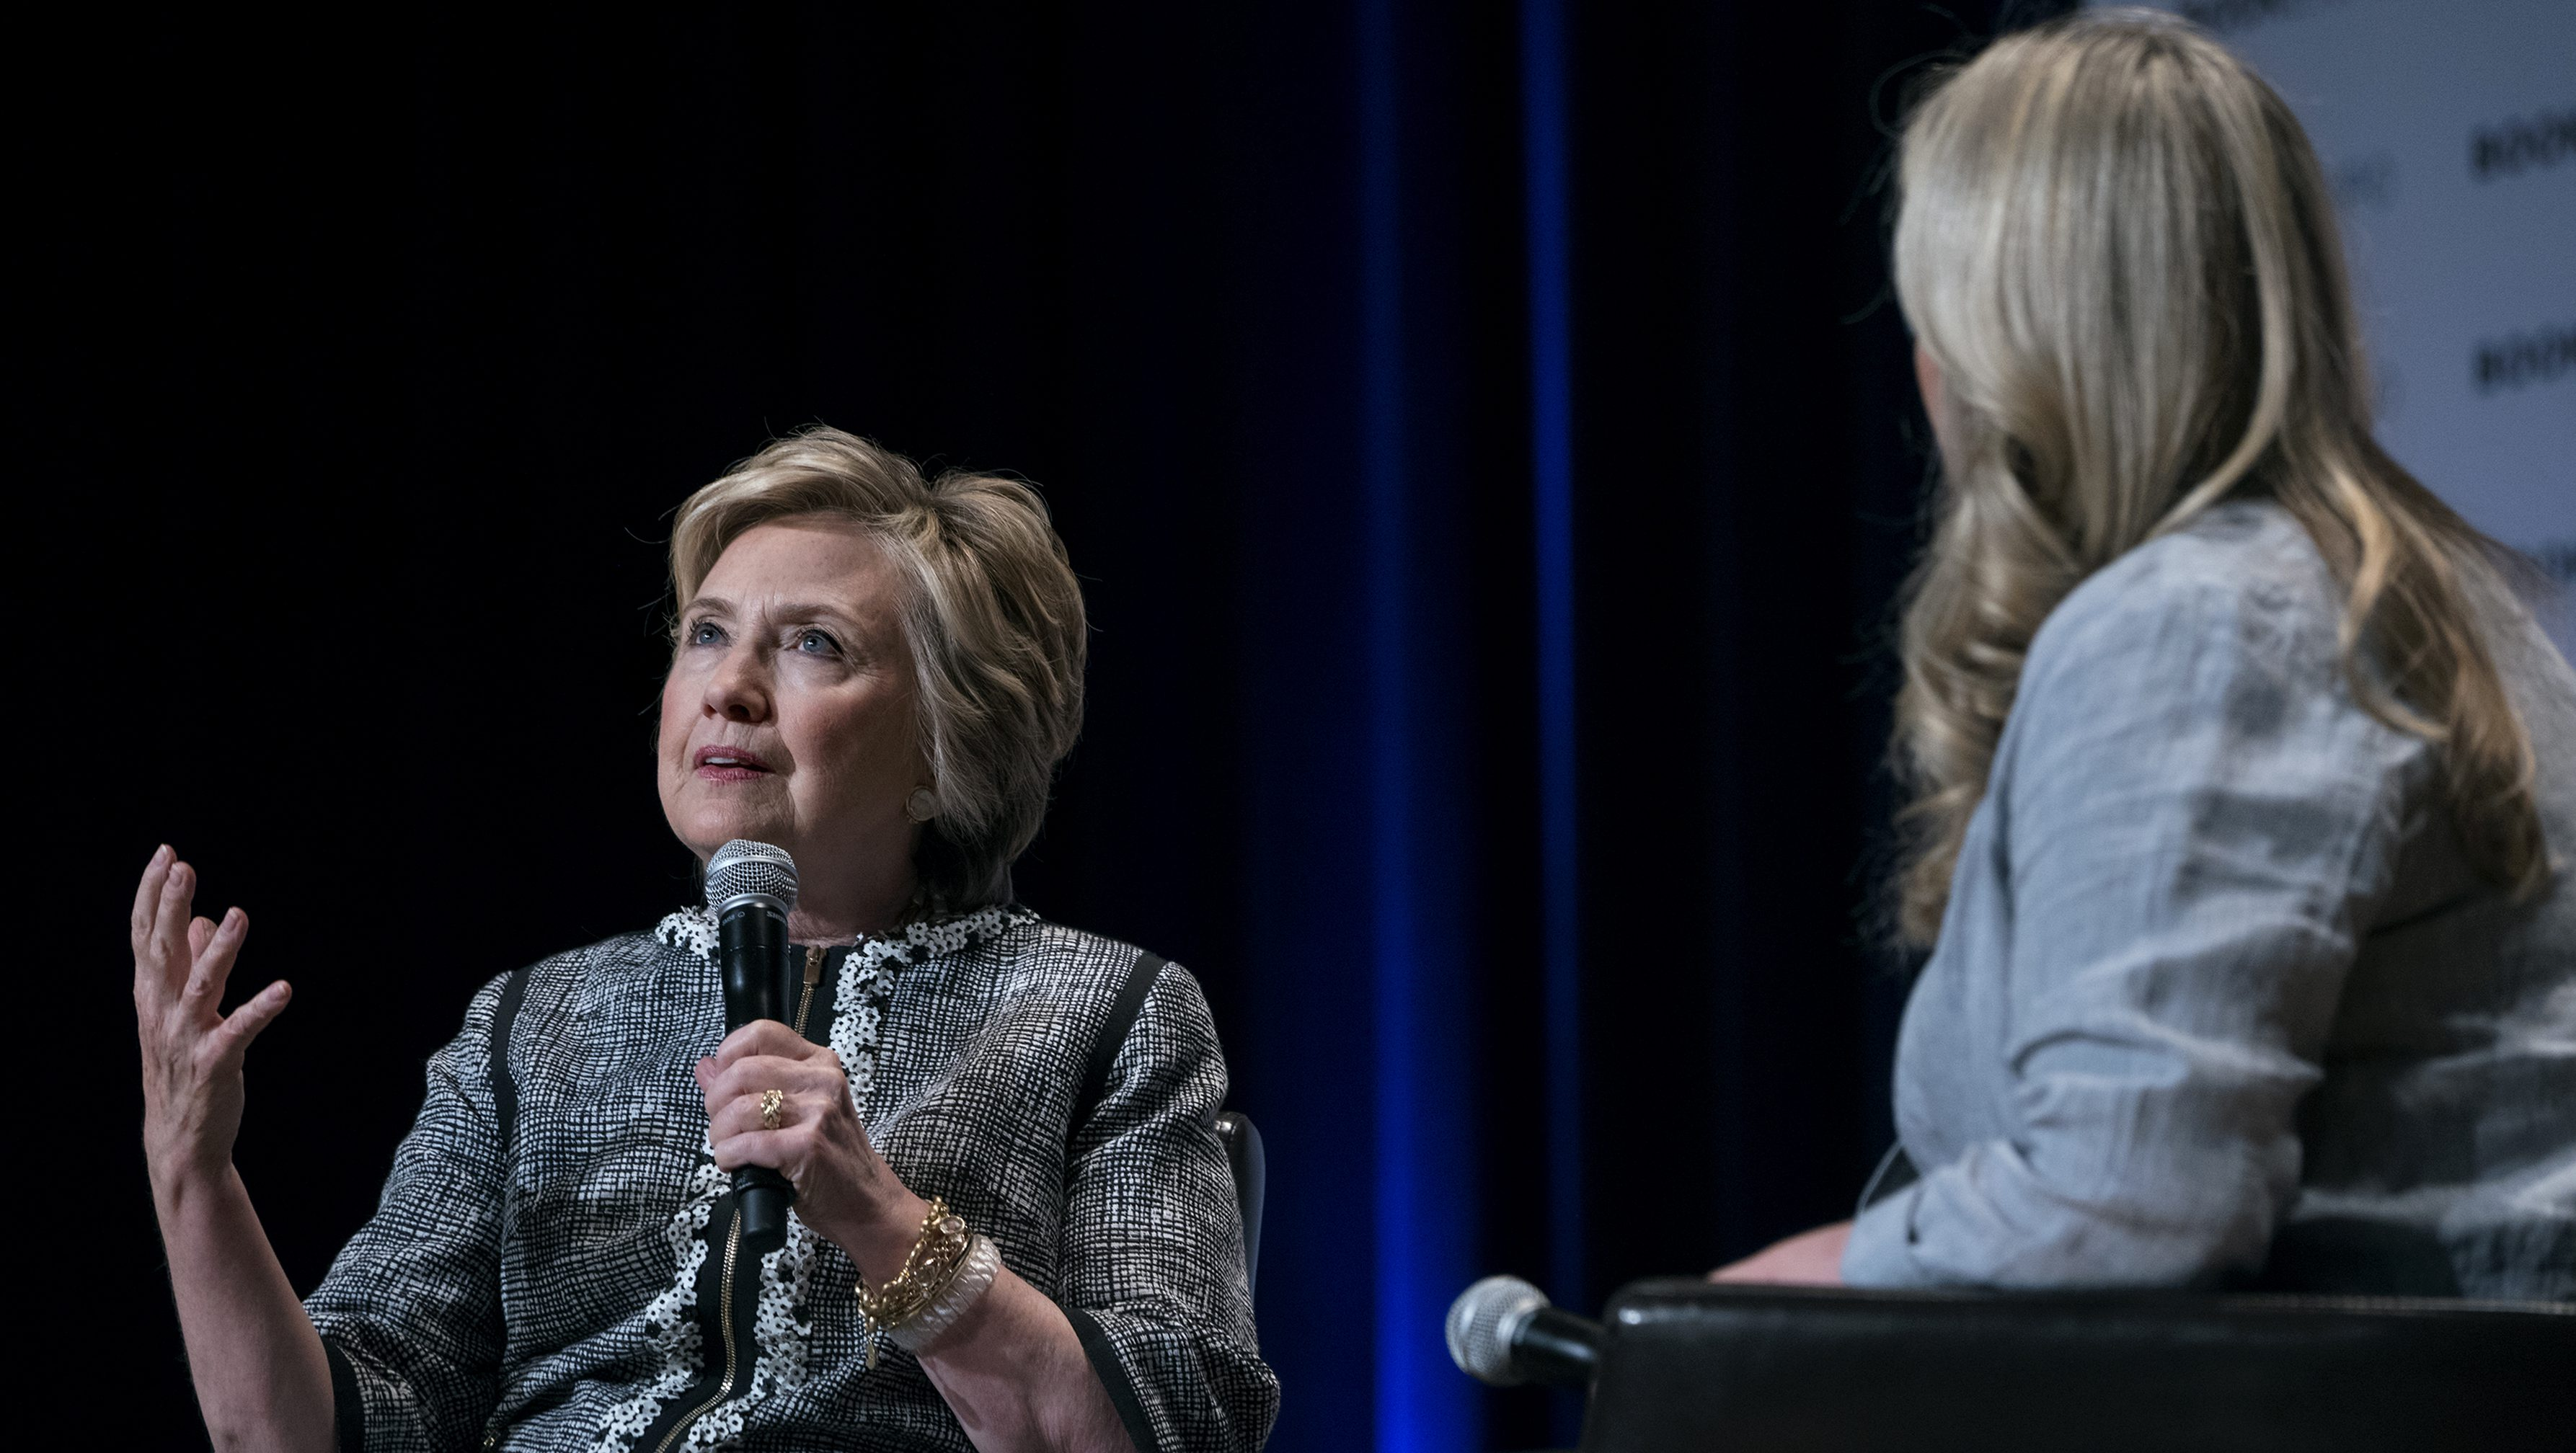 Former Secretary of State Hillary Clinton speaks alongside moderator and author Cheryl Strayed during the Book Expo event in New York Thursday, June 1, 2017. (AP Photo/Craig Ruttle)